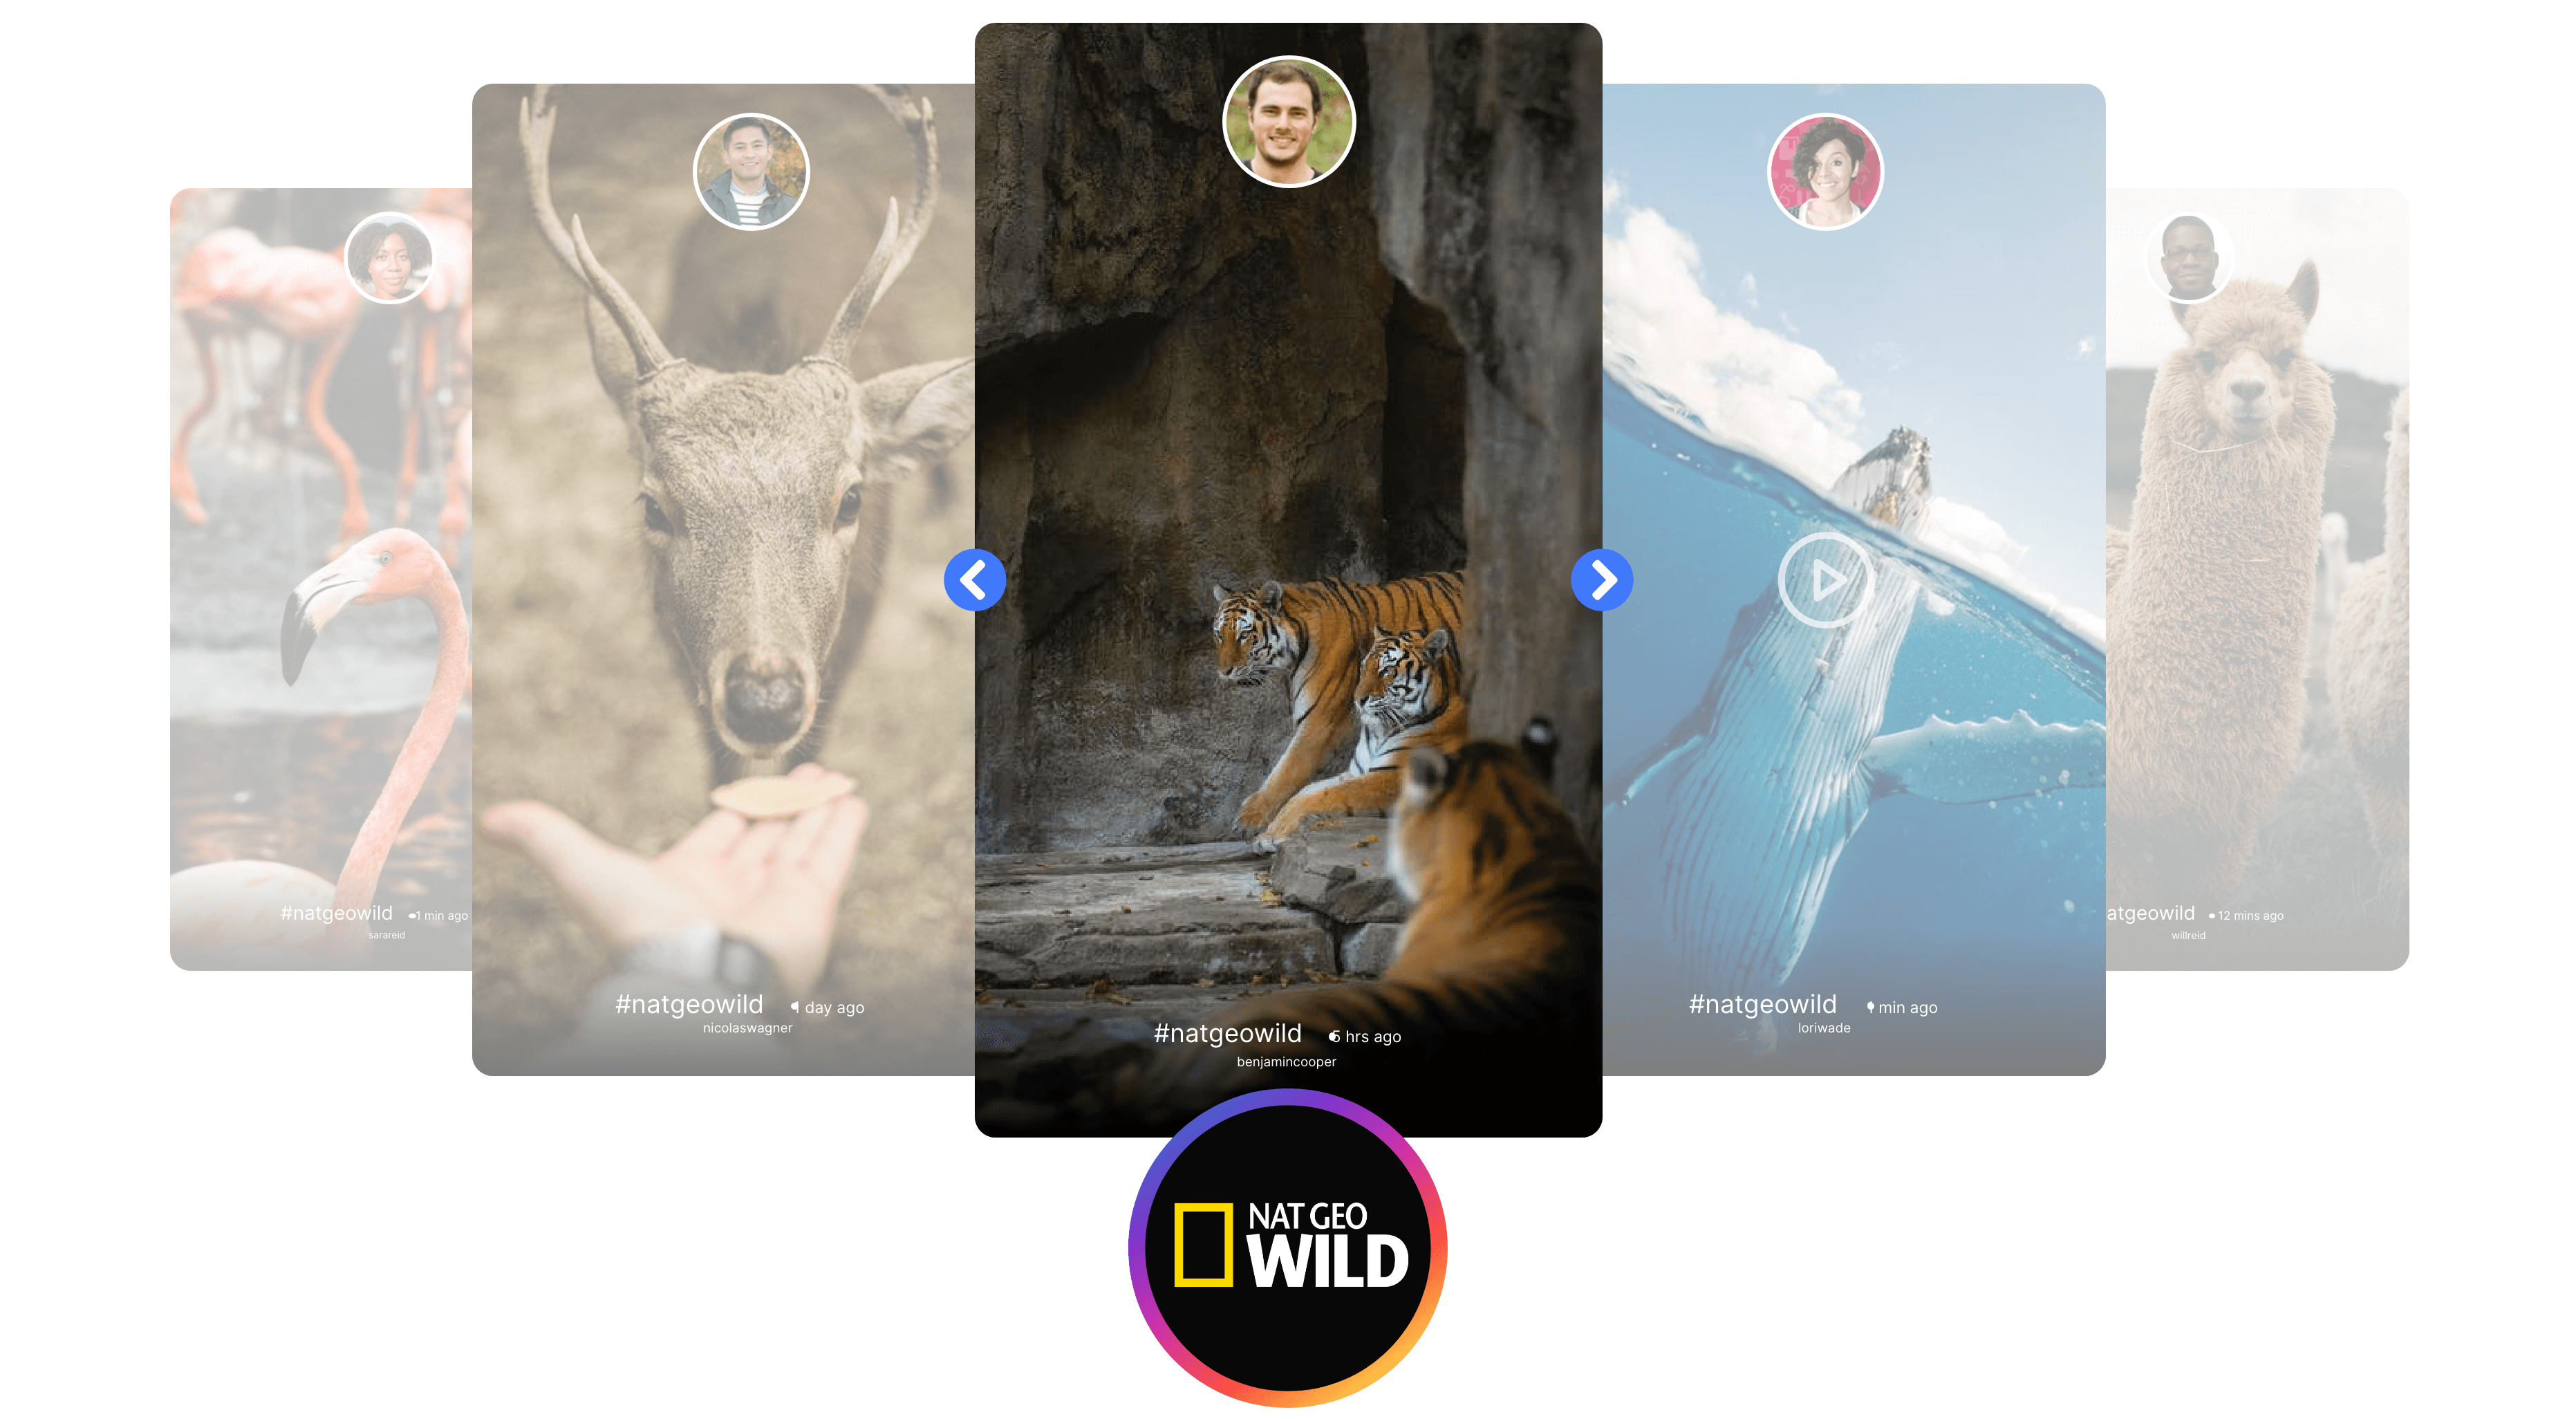 embed Instagram stories widget on website